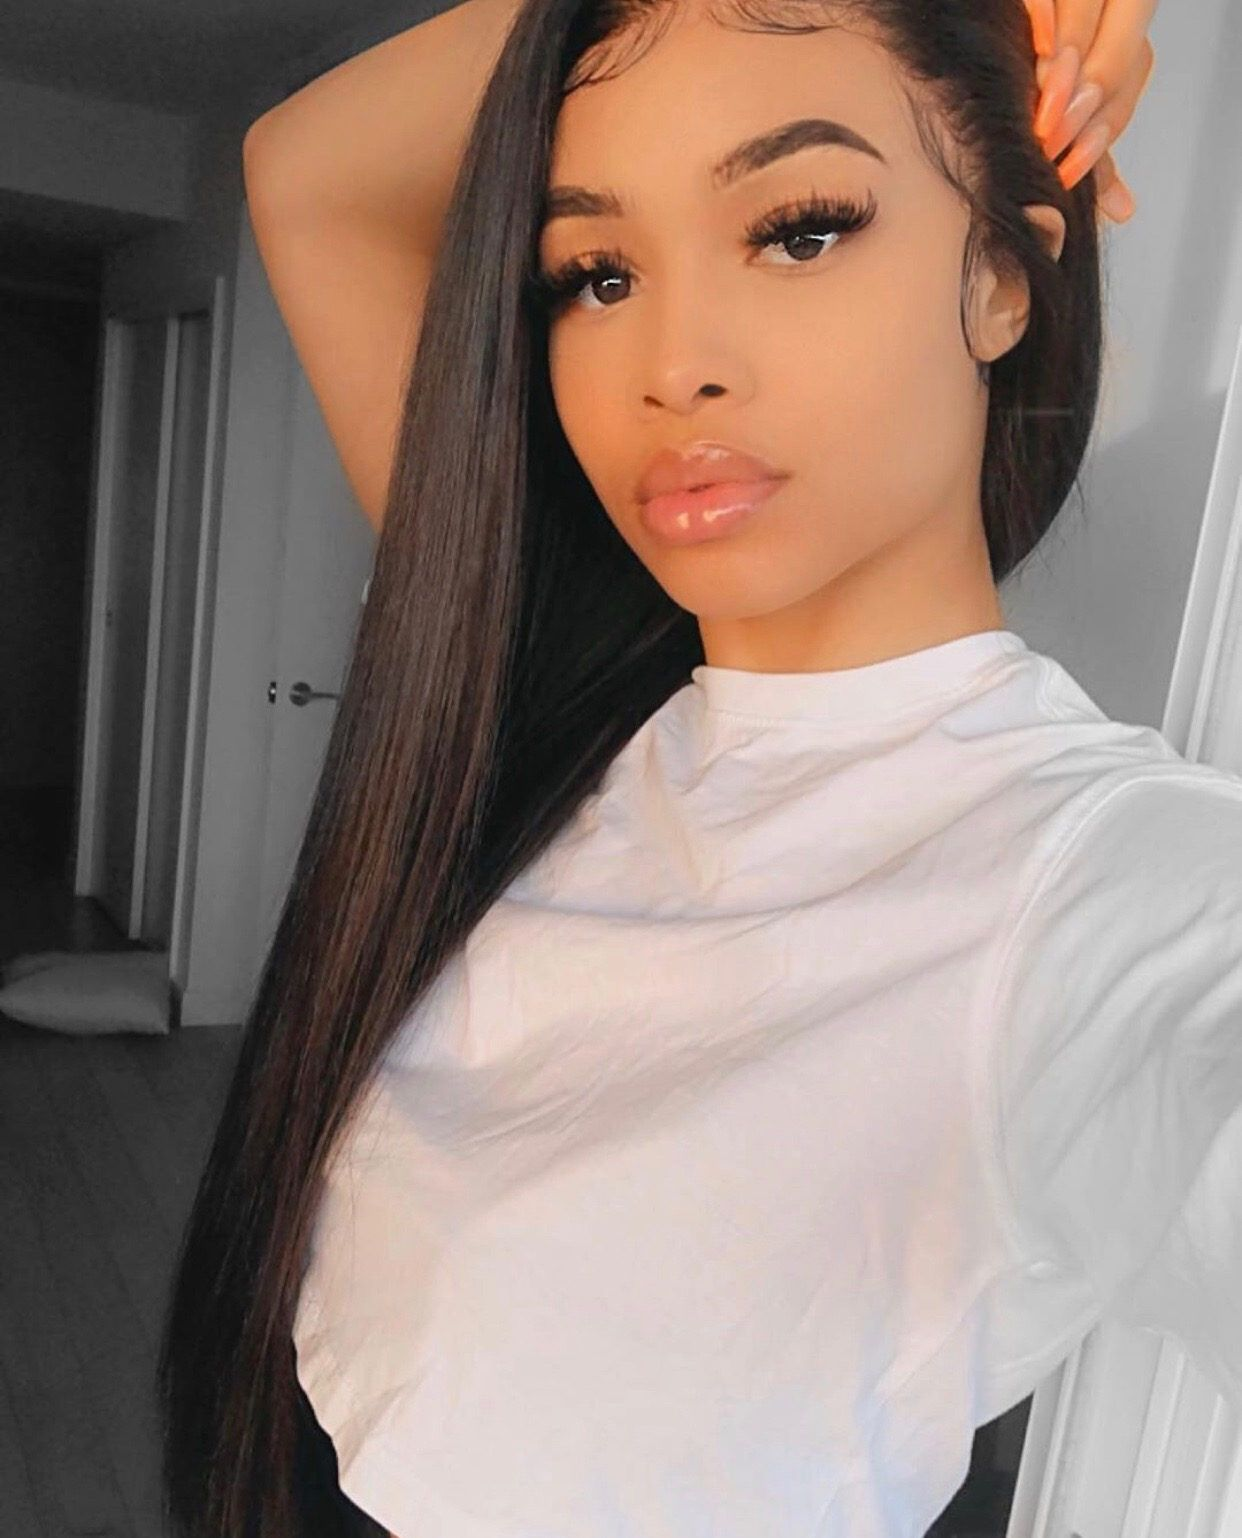 2020 New Straight Wigs Black Long Hair Luna Wigs For Black Women 30 Inch Wig Straight